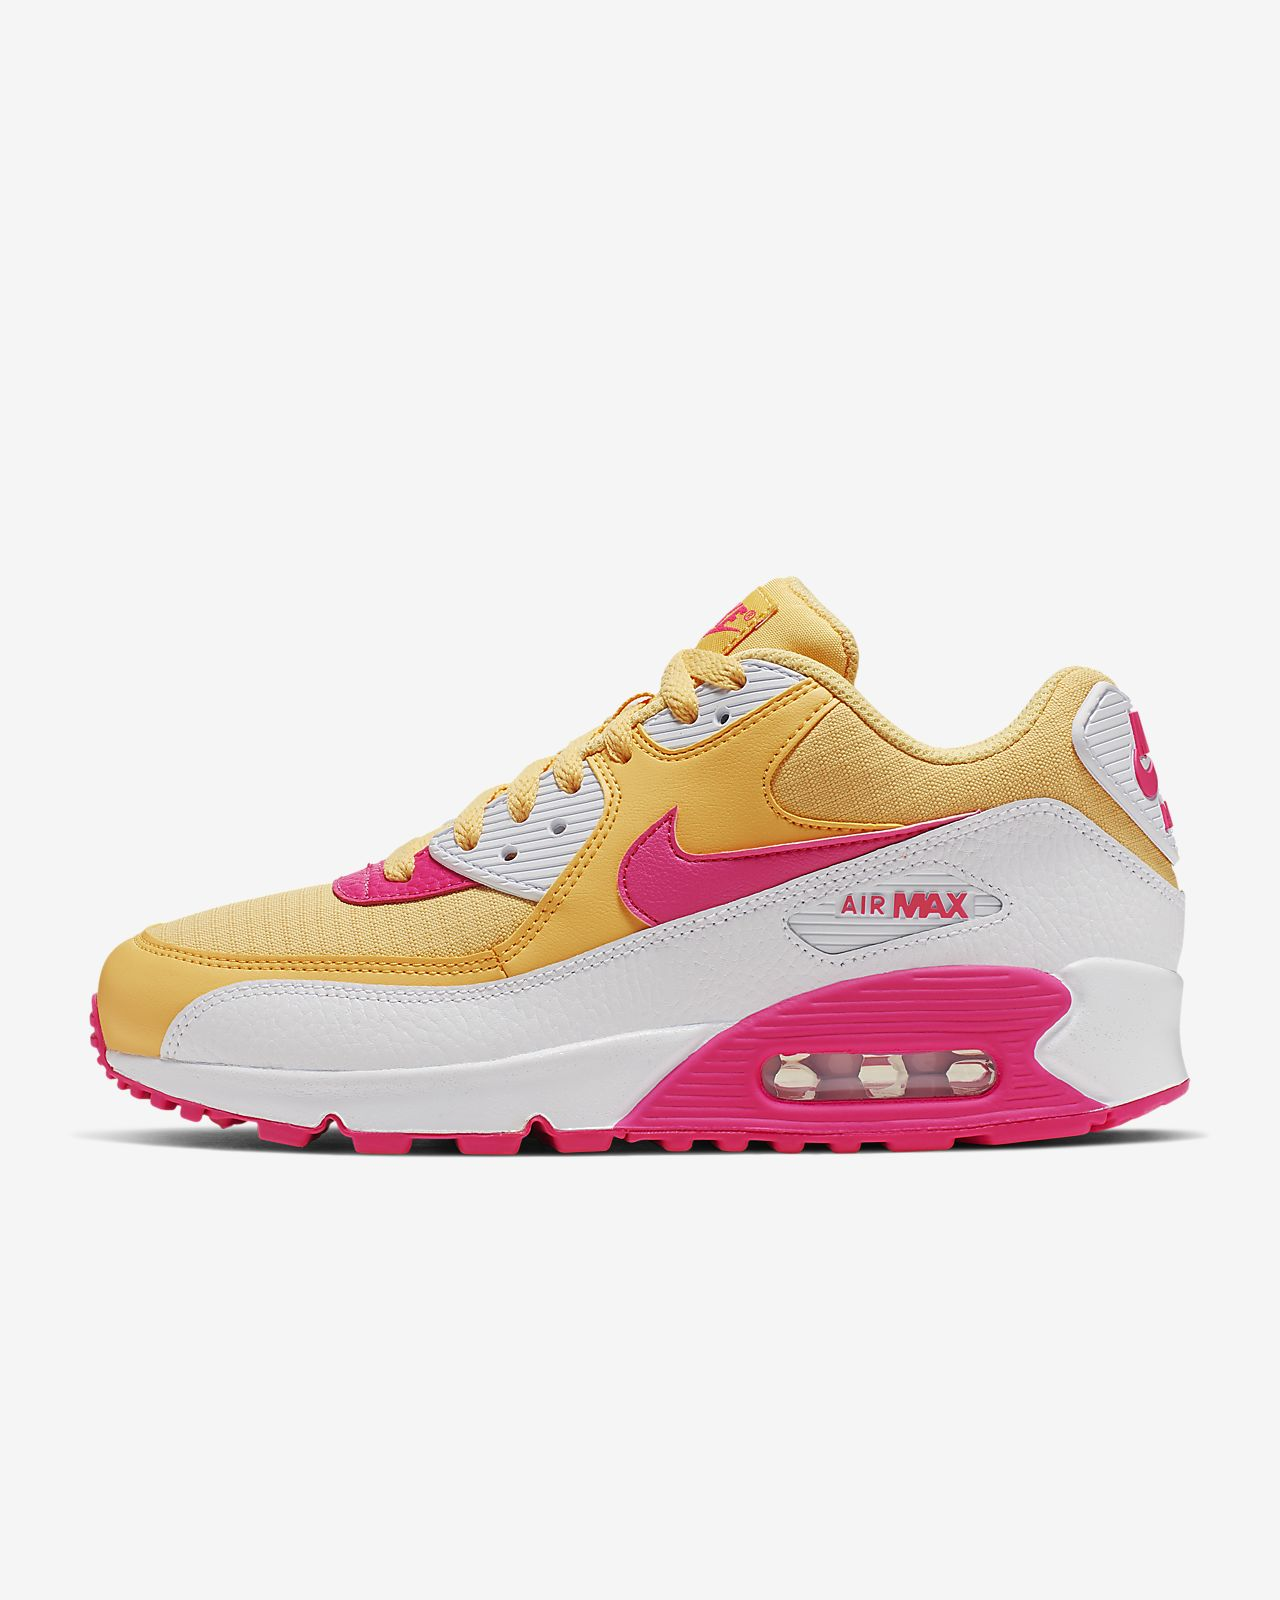 new products be1de 29902 Nike Air Max 90 Women s Shoe. Nike.com